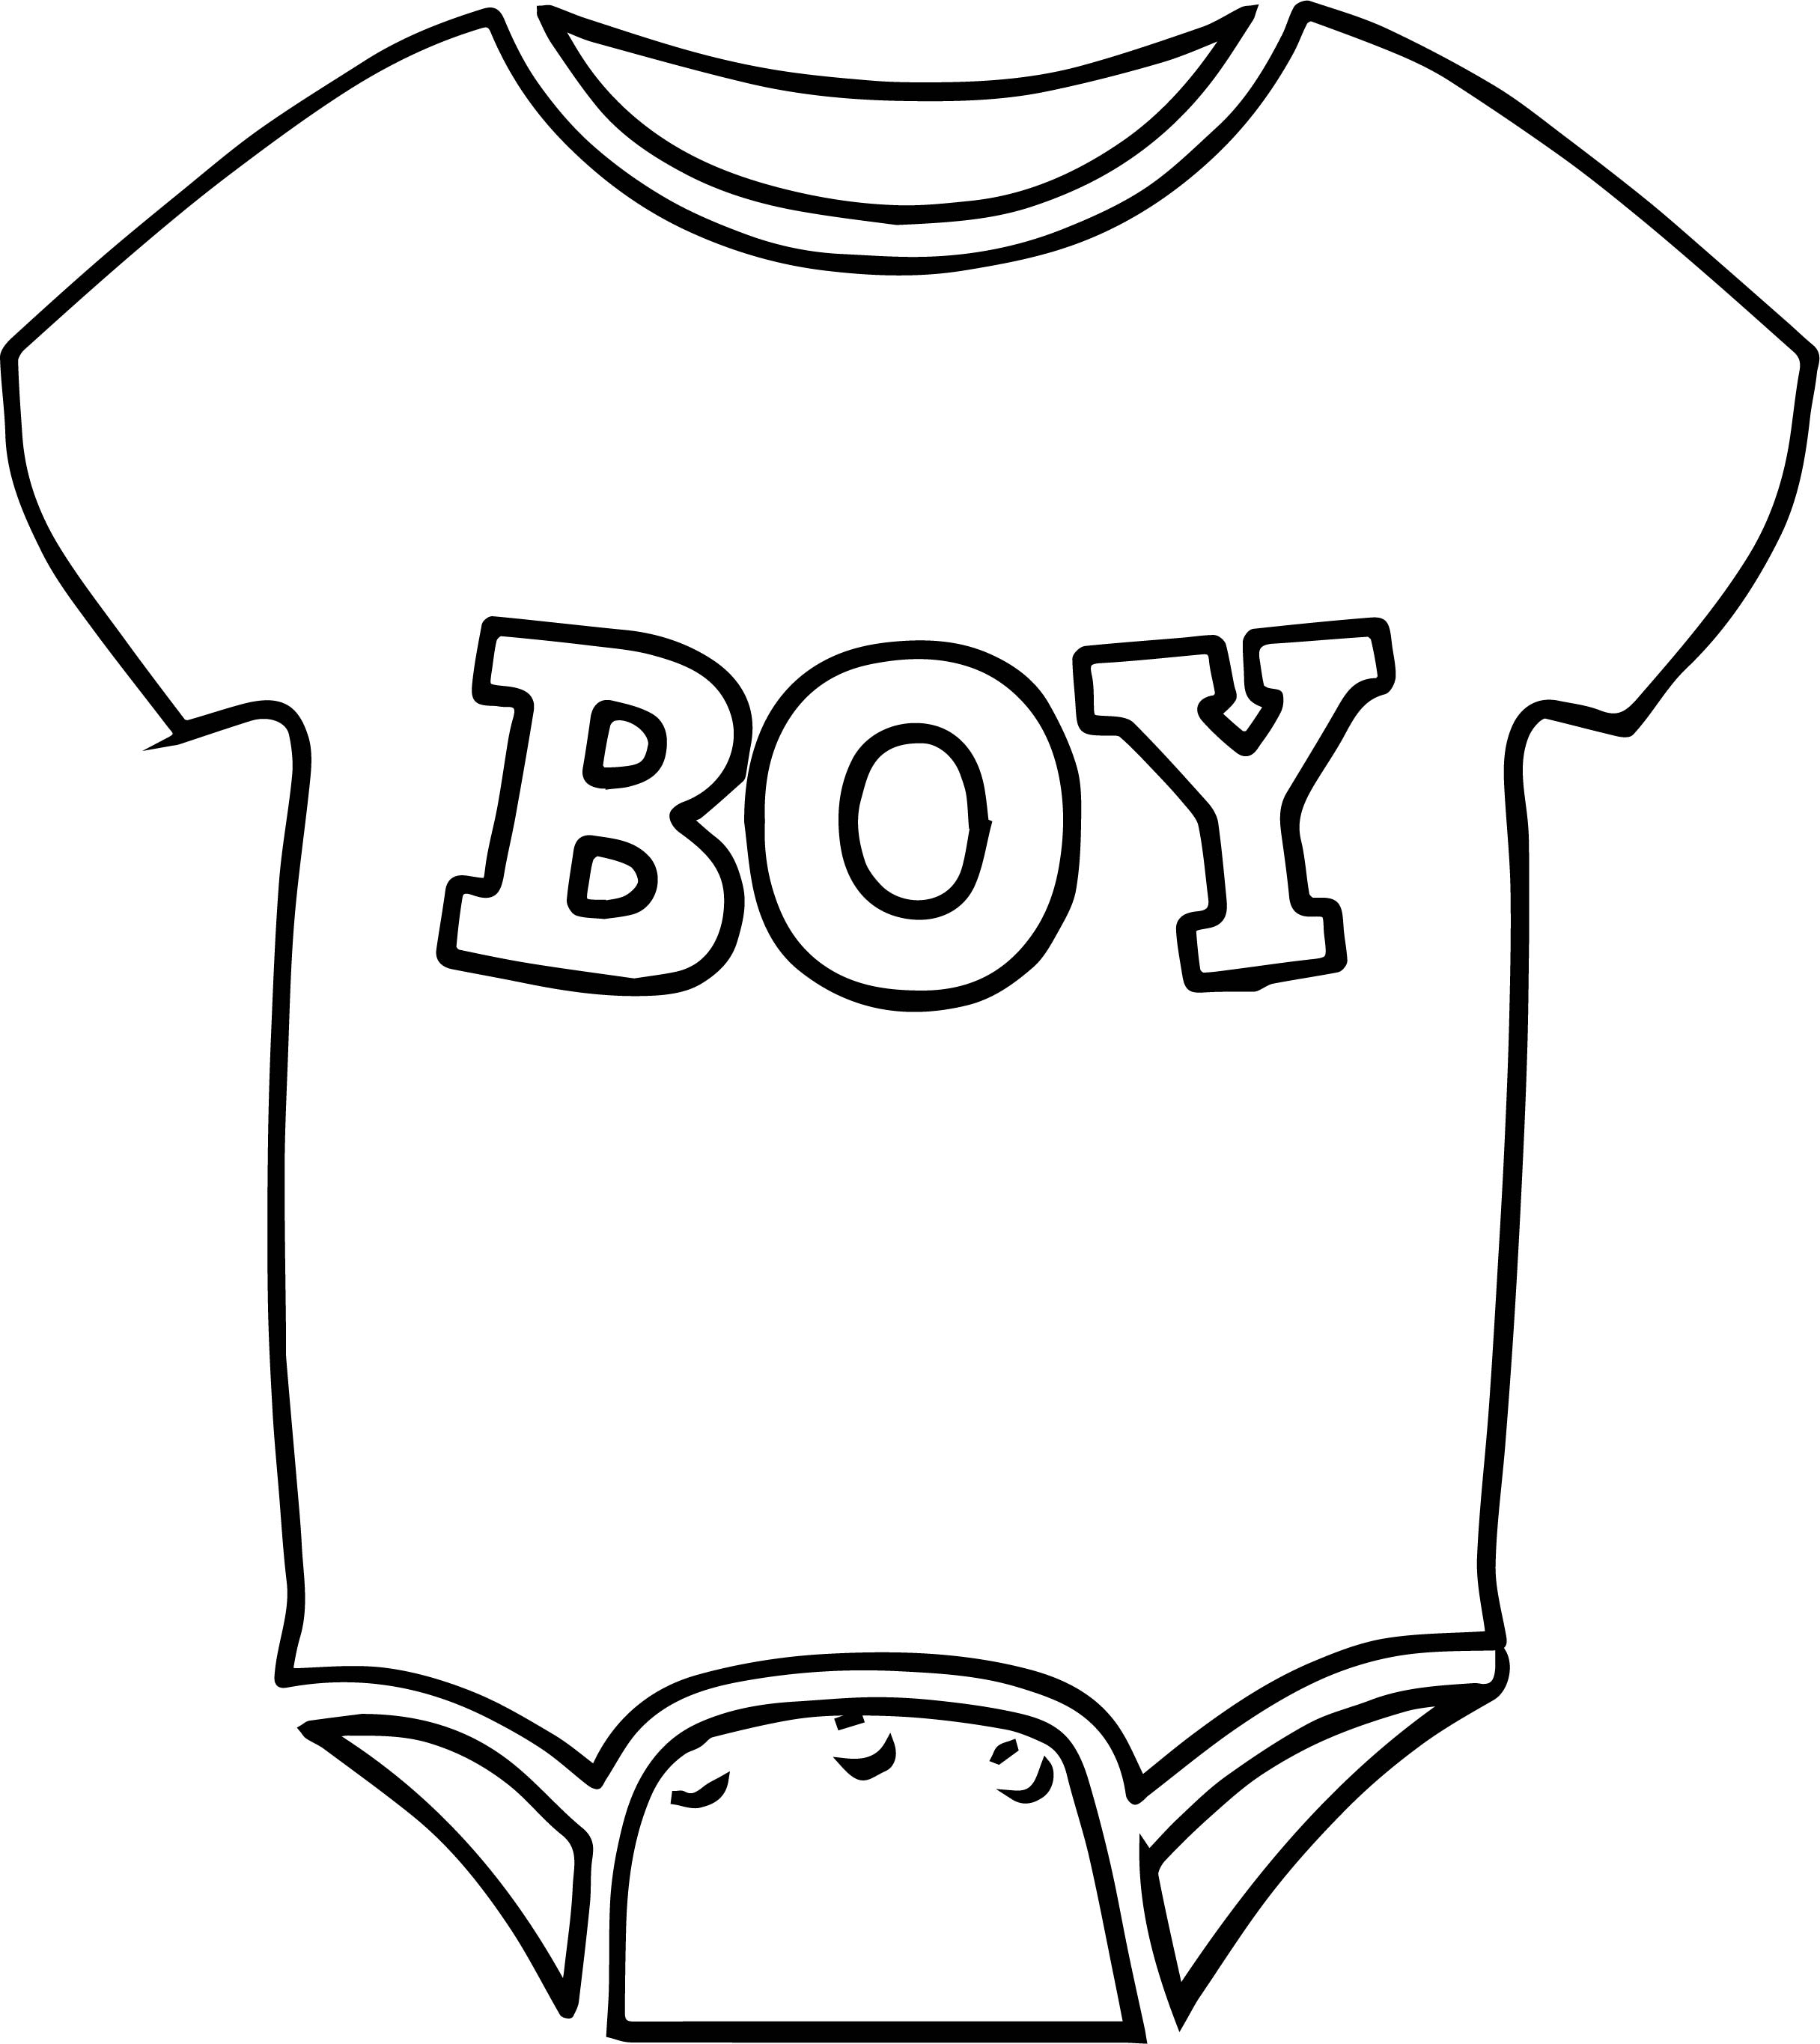 coloring page of a baby - baby boy shirt coloring page